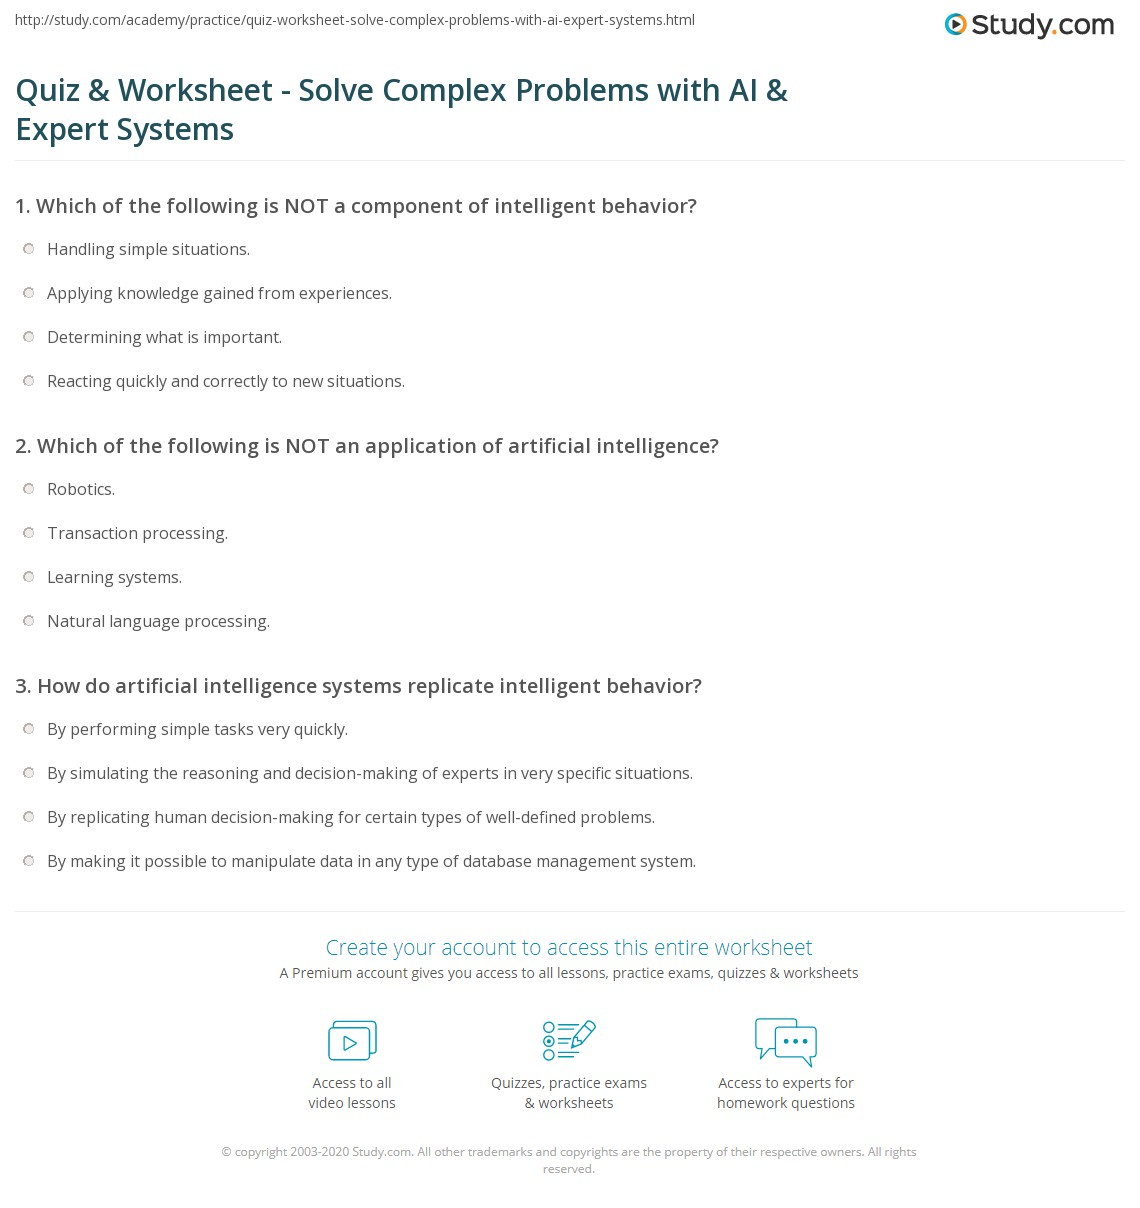 worksheet Ai Worksheets quiz worksheet solve complex problems with ai expert systems print using artificial intelligence and to worksheet